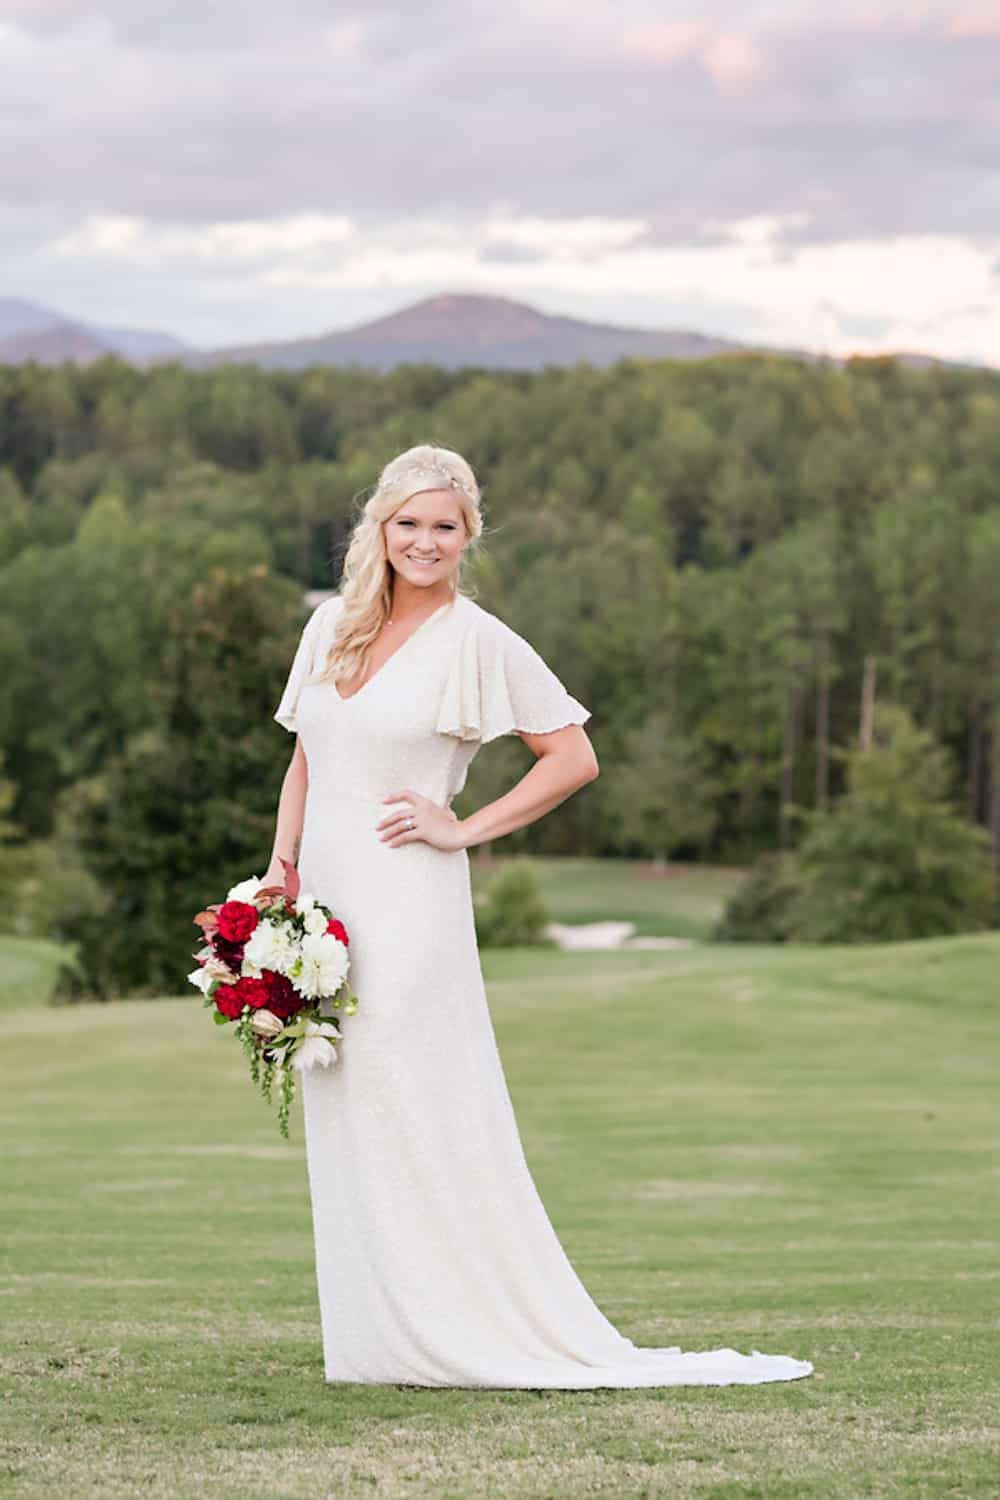 16A Gaddy_Names_JenniferStuartPhotography_SarahLukeWEDDING848_low